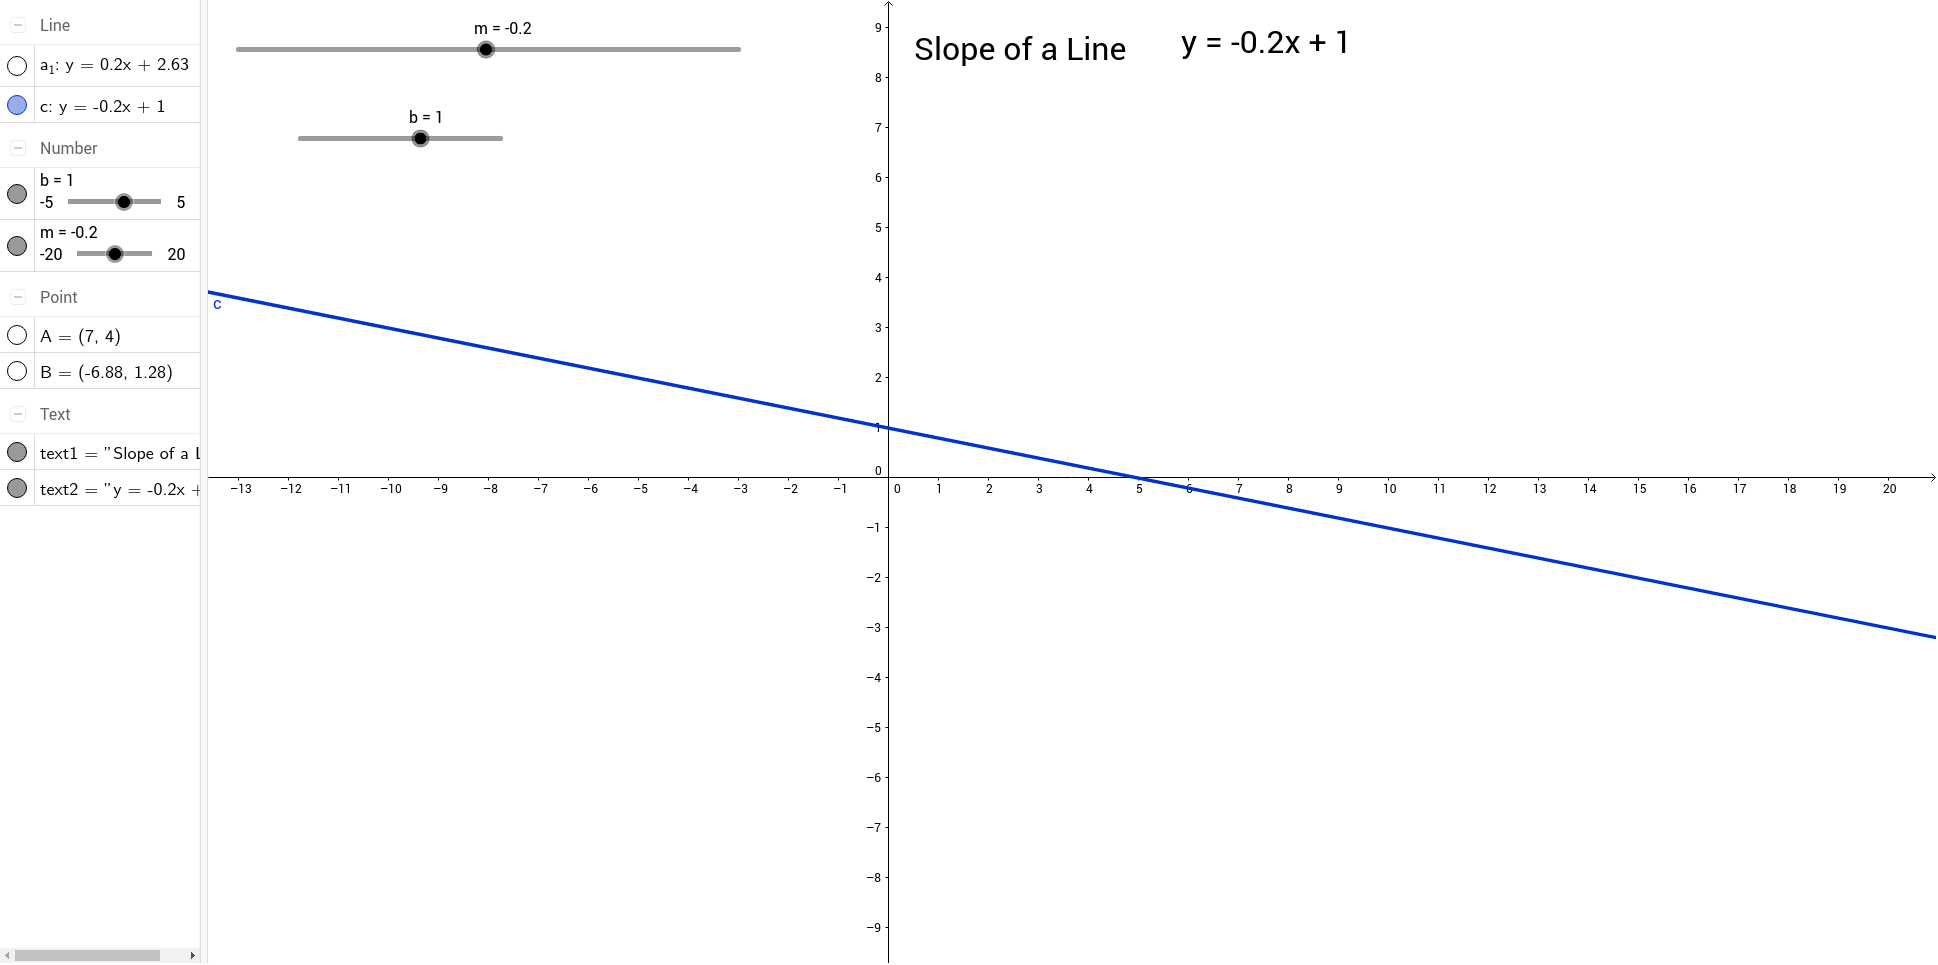 worksheet Introduction To Slope Worksheet introduction to slope of a line geogebra draw with 1 and b value zero what angle does this make the x axis 2 how do values and